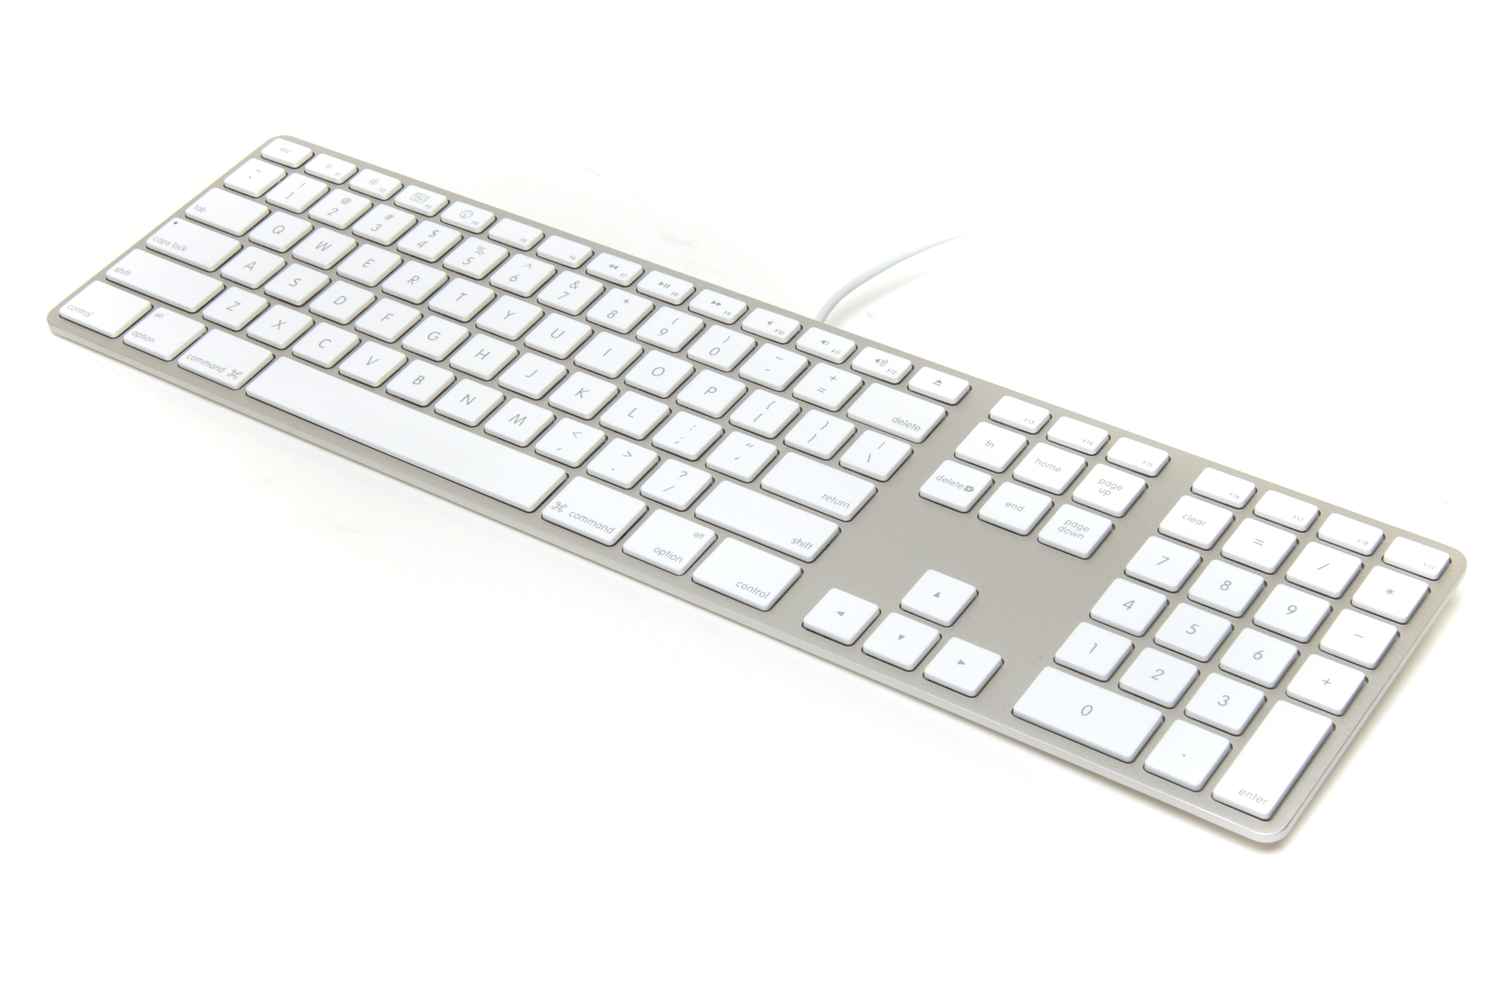 Apple Wired Keyboard For Pc : apple wired keyboard review pc components keyboards mice input devices pc world australia ~ Russianpoet.info Haus und Dekorationen